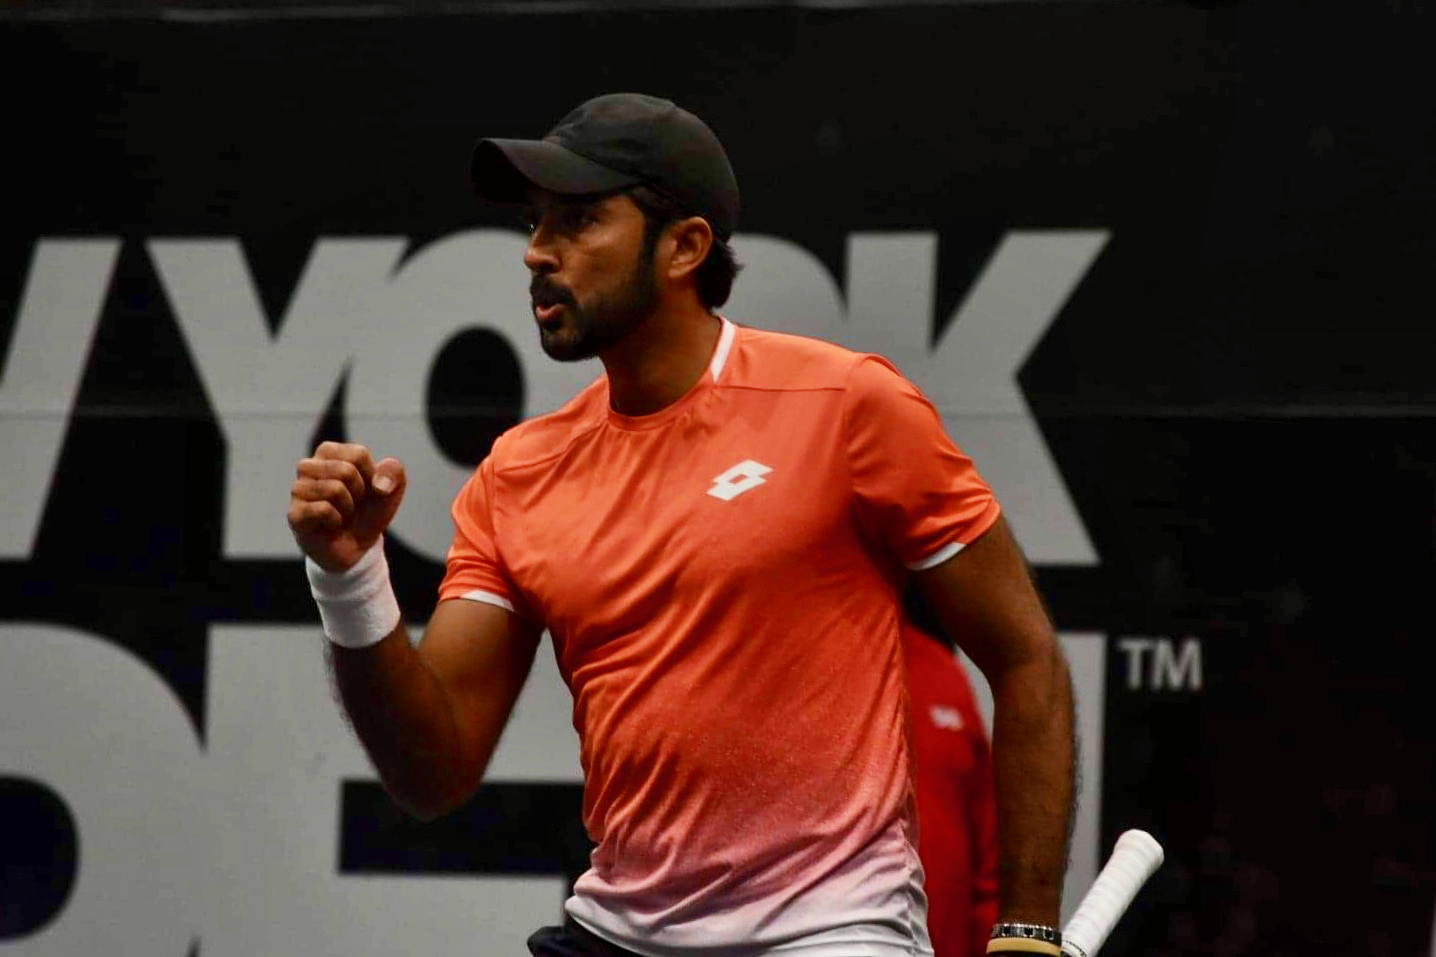 Aisam-ul-Haq Qureshi at the New York Open in Nassau Coliseum on Long Island in February 2019. (John Lupo)